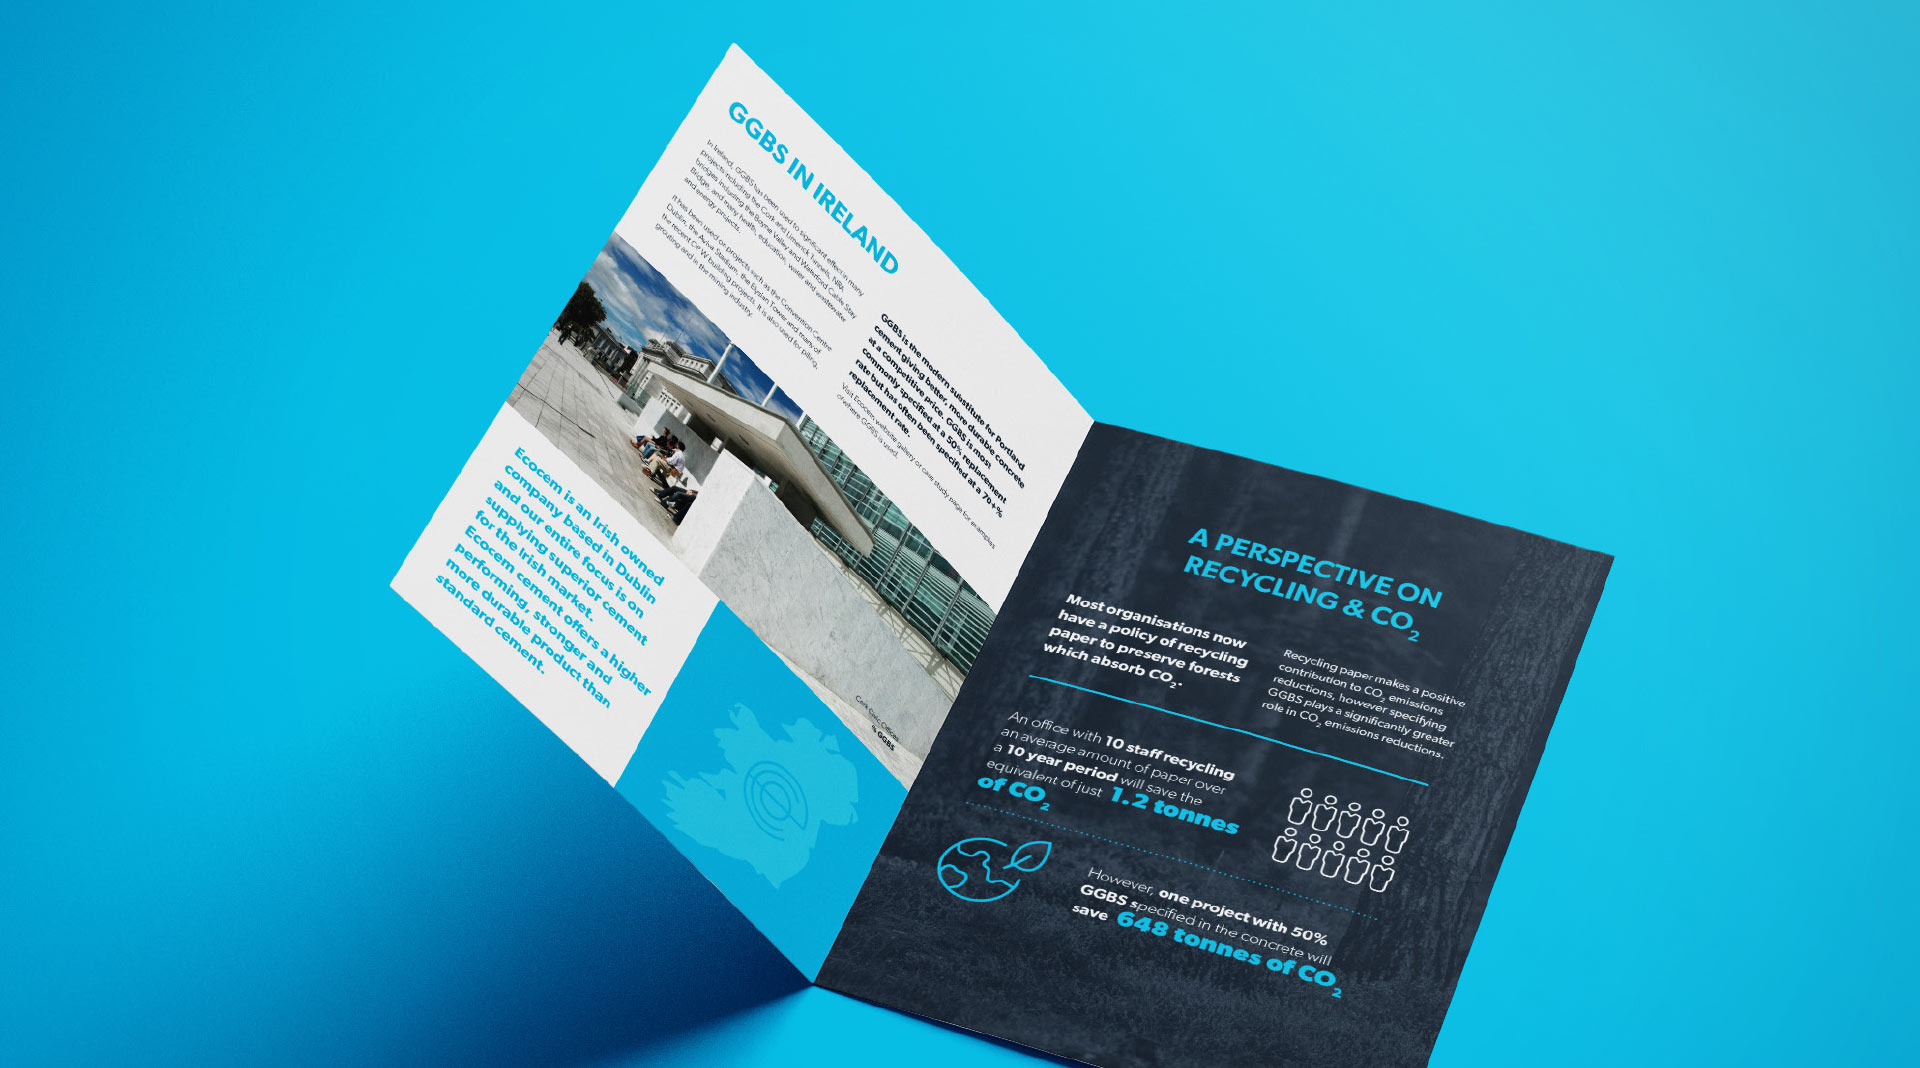 Ecocem Ireland brochure design